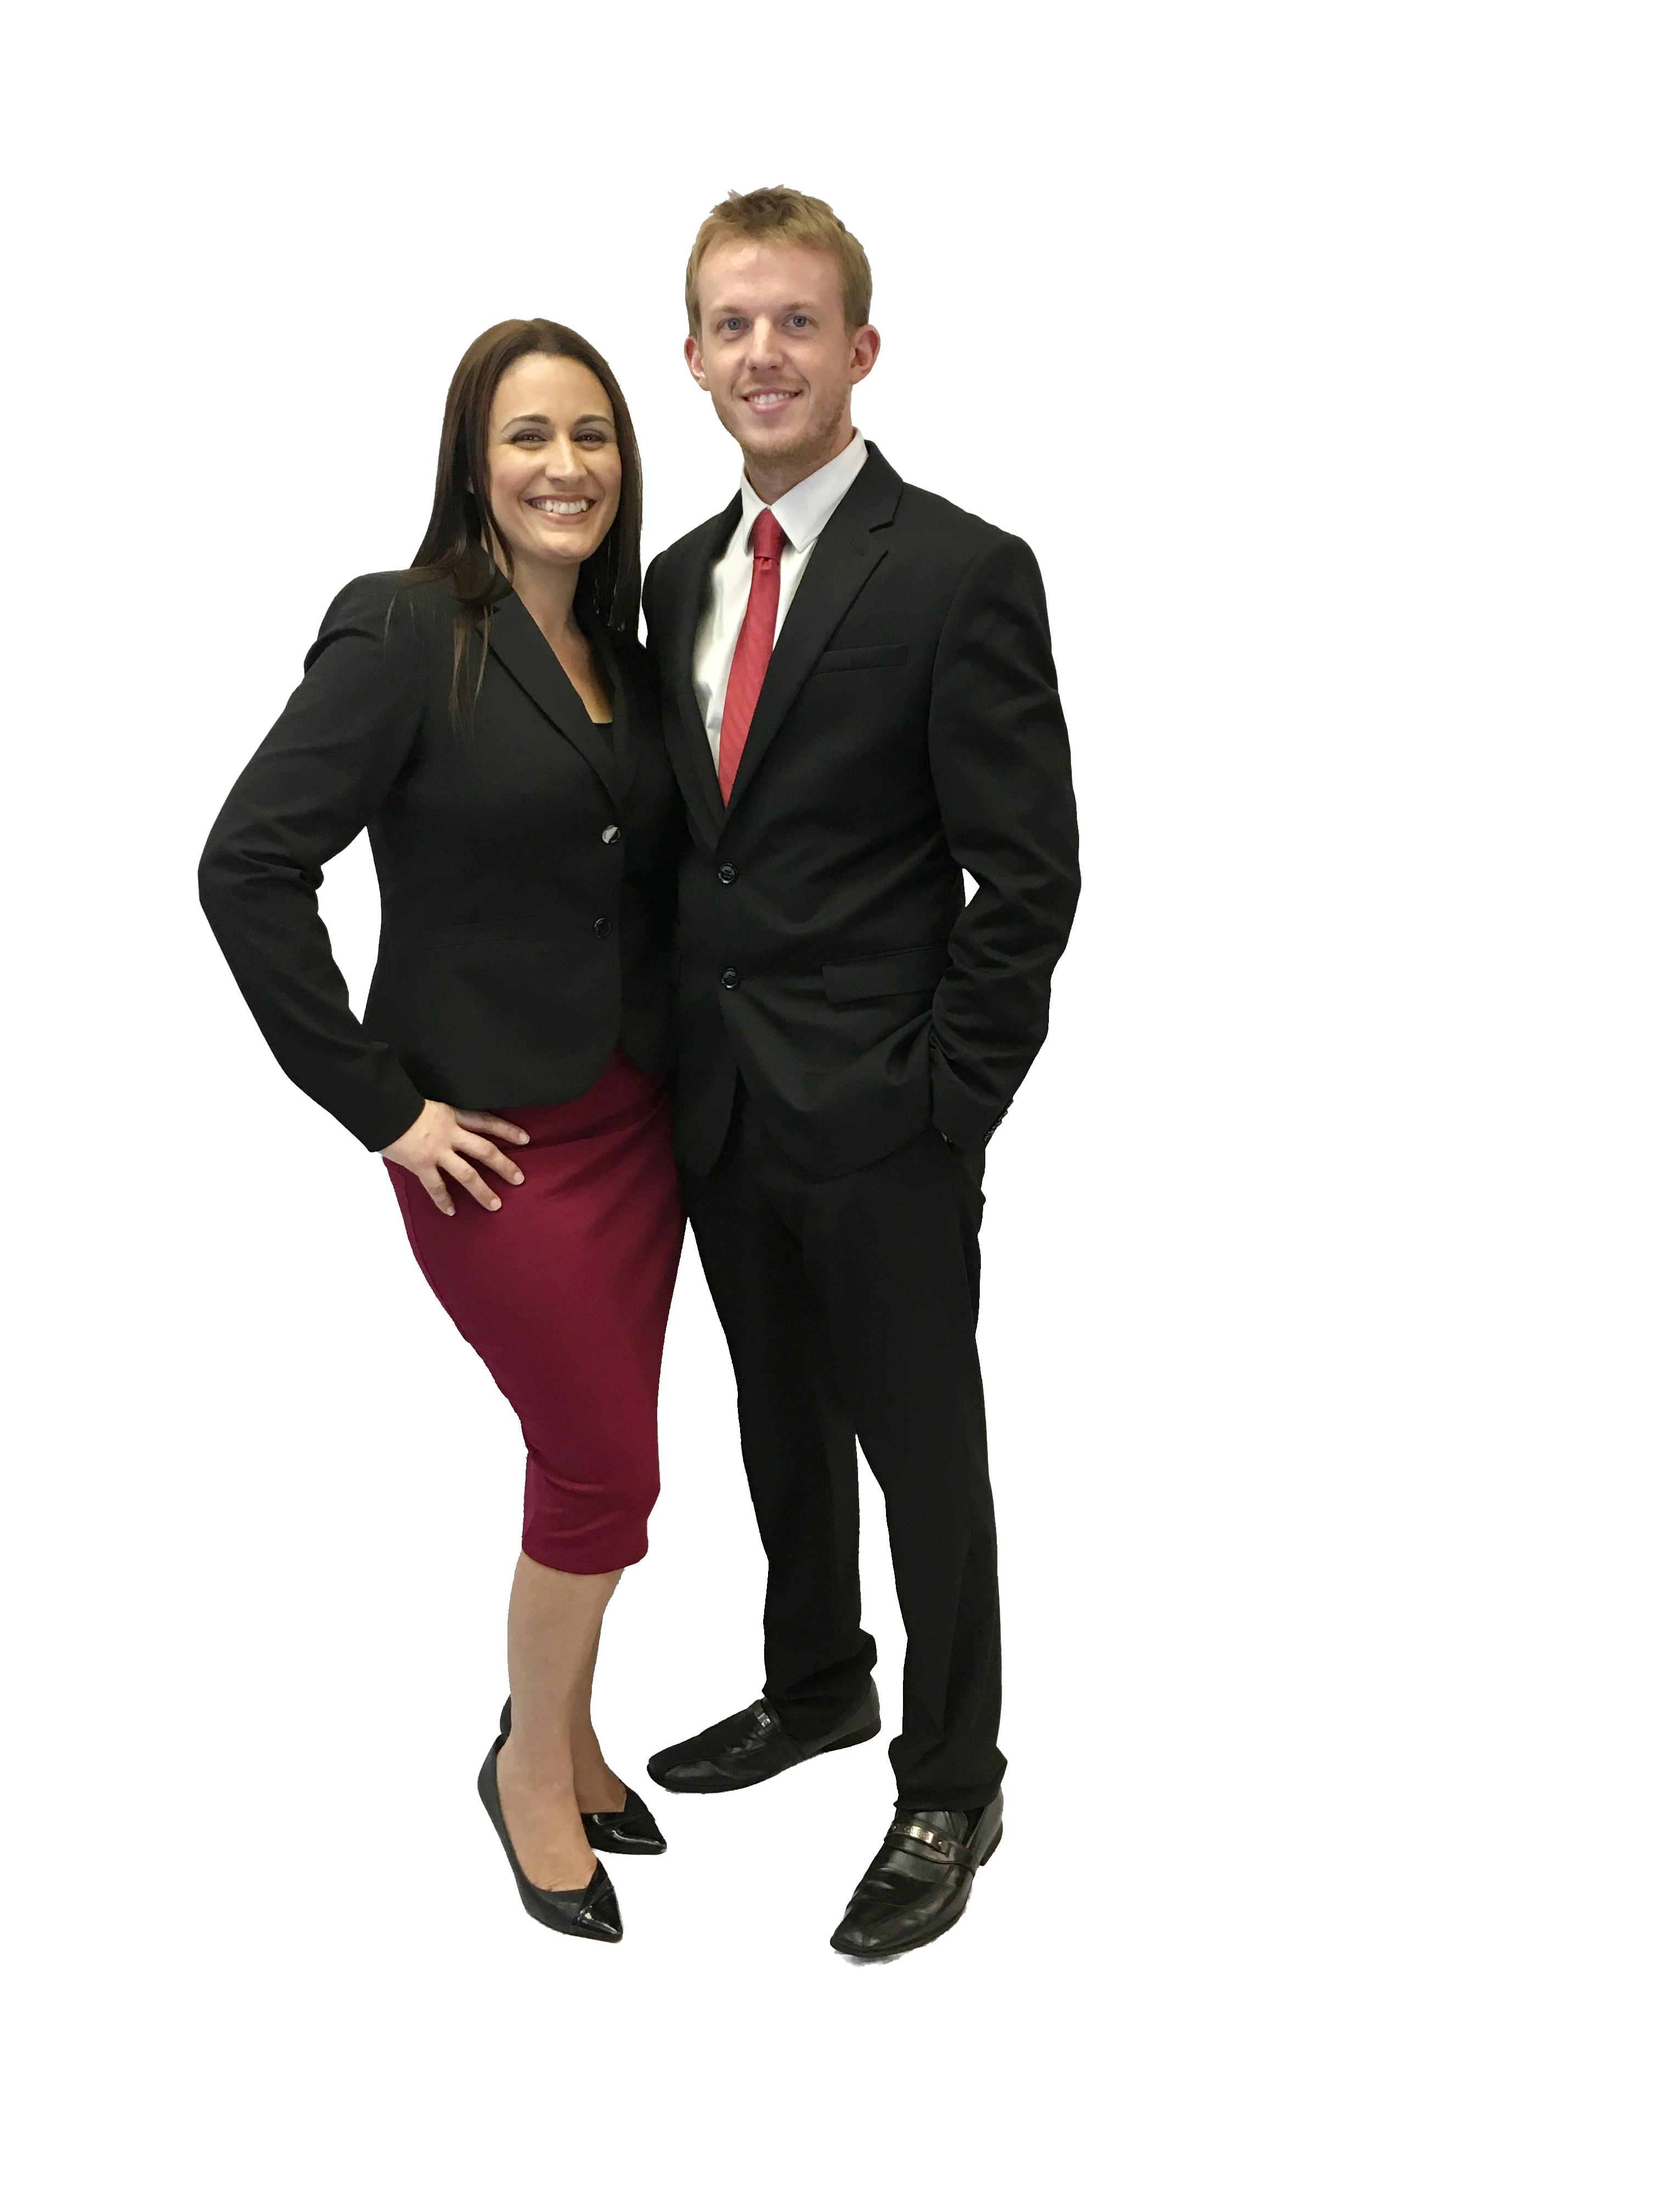 Oliver and Devinee Overton-Morgan, Orlando property managers